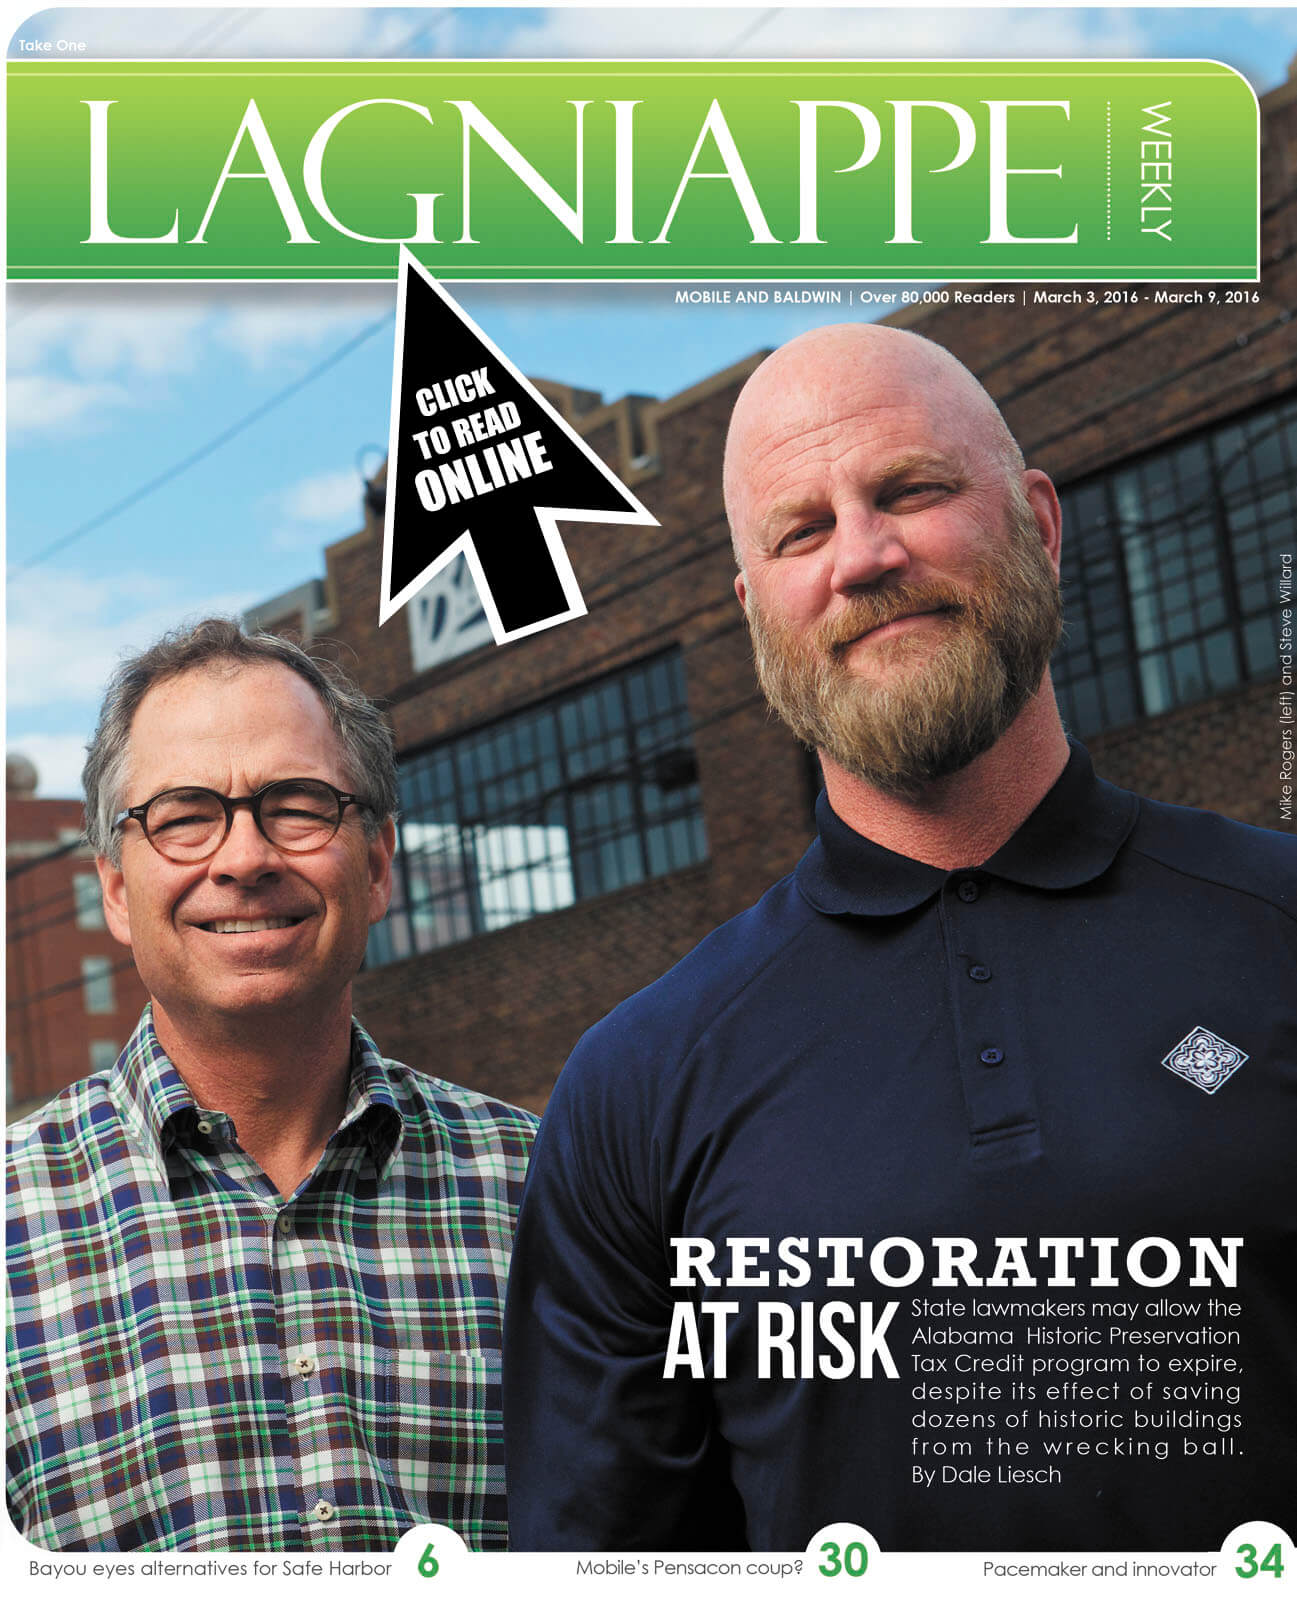 Lagniappe: March 3 – 9, 2016